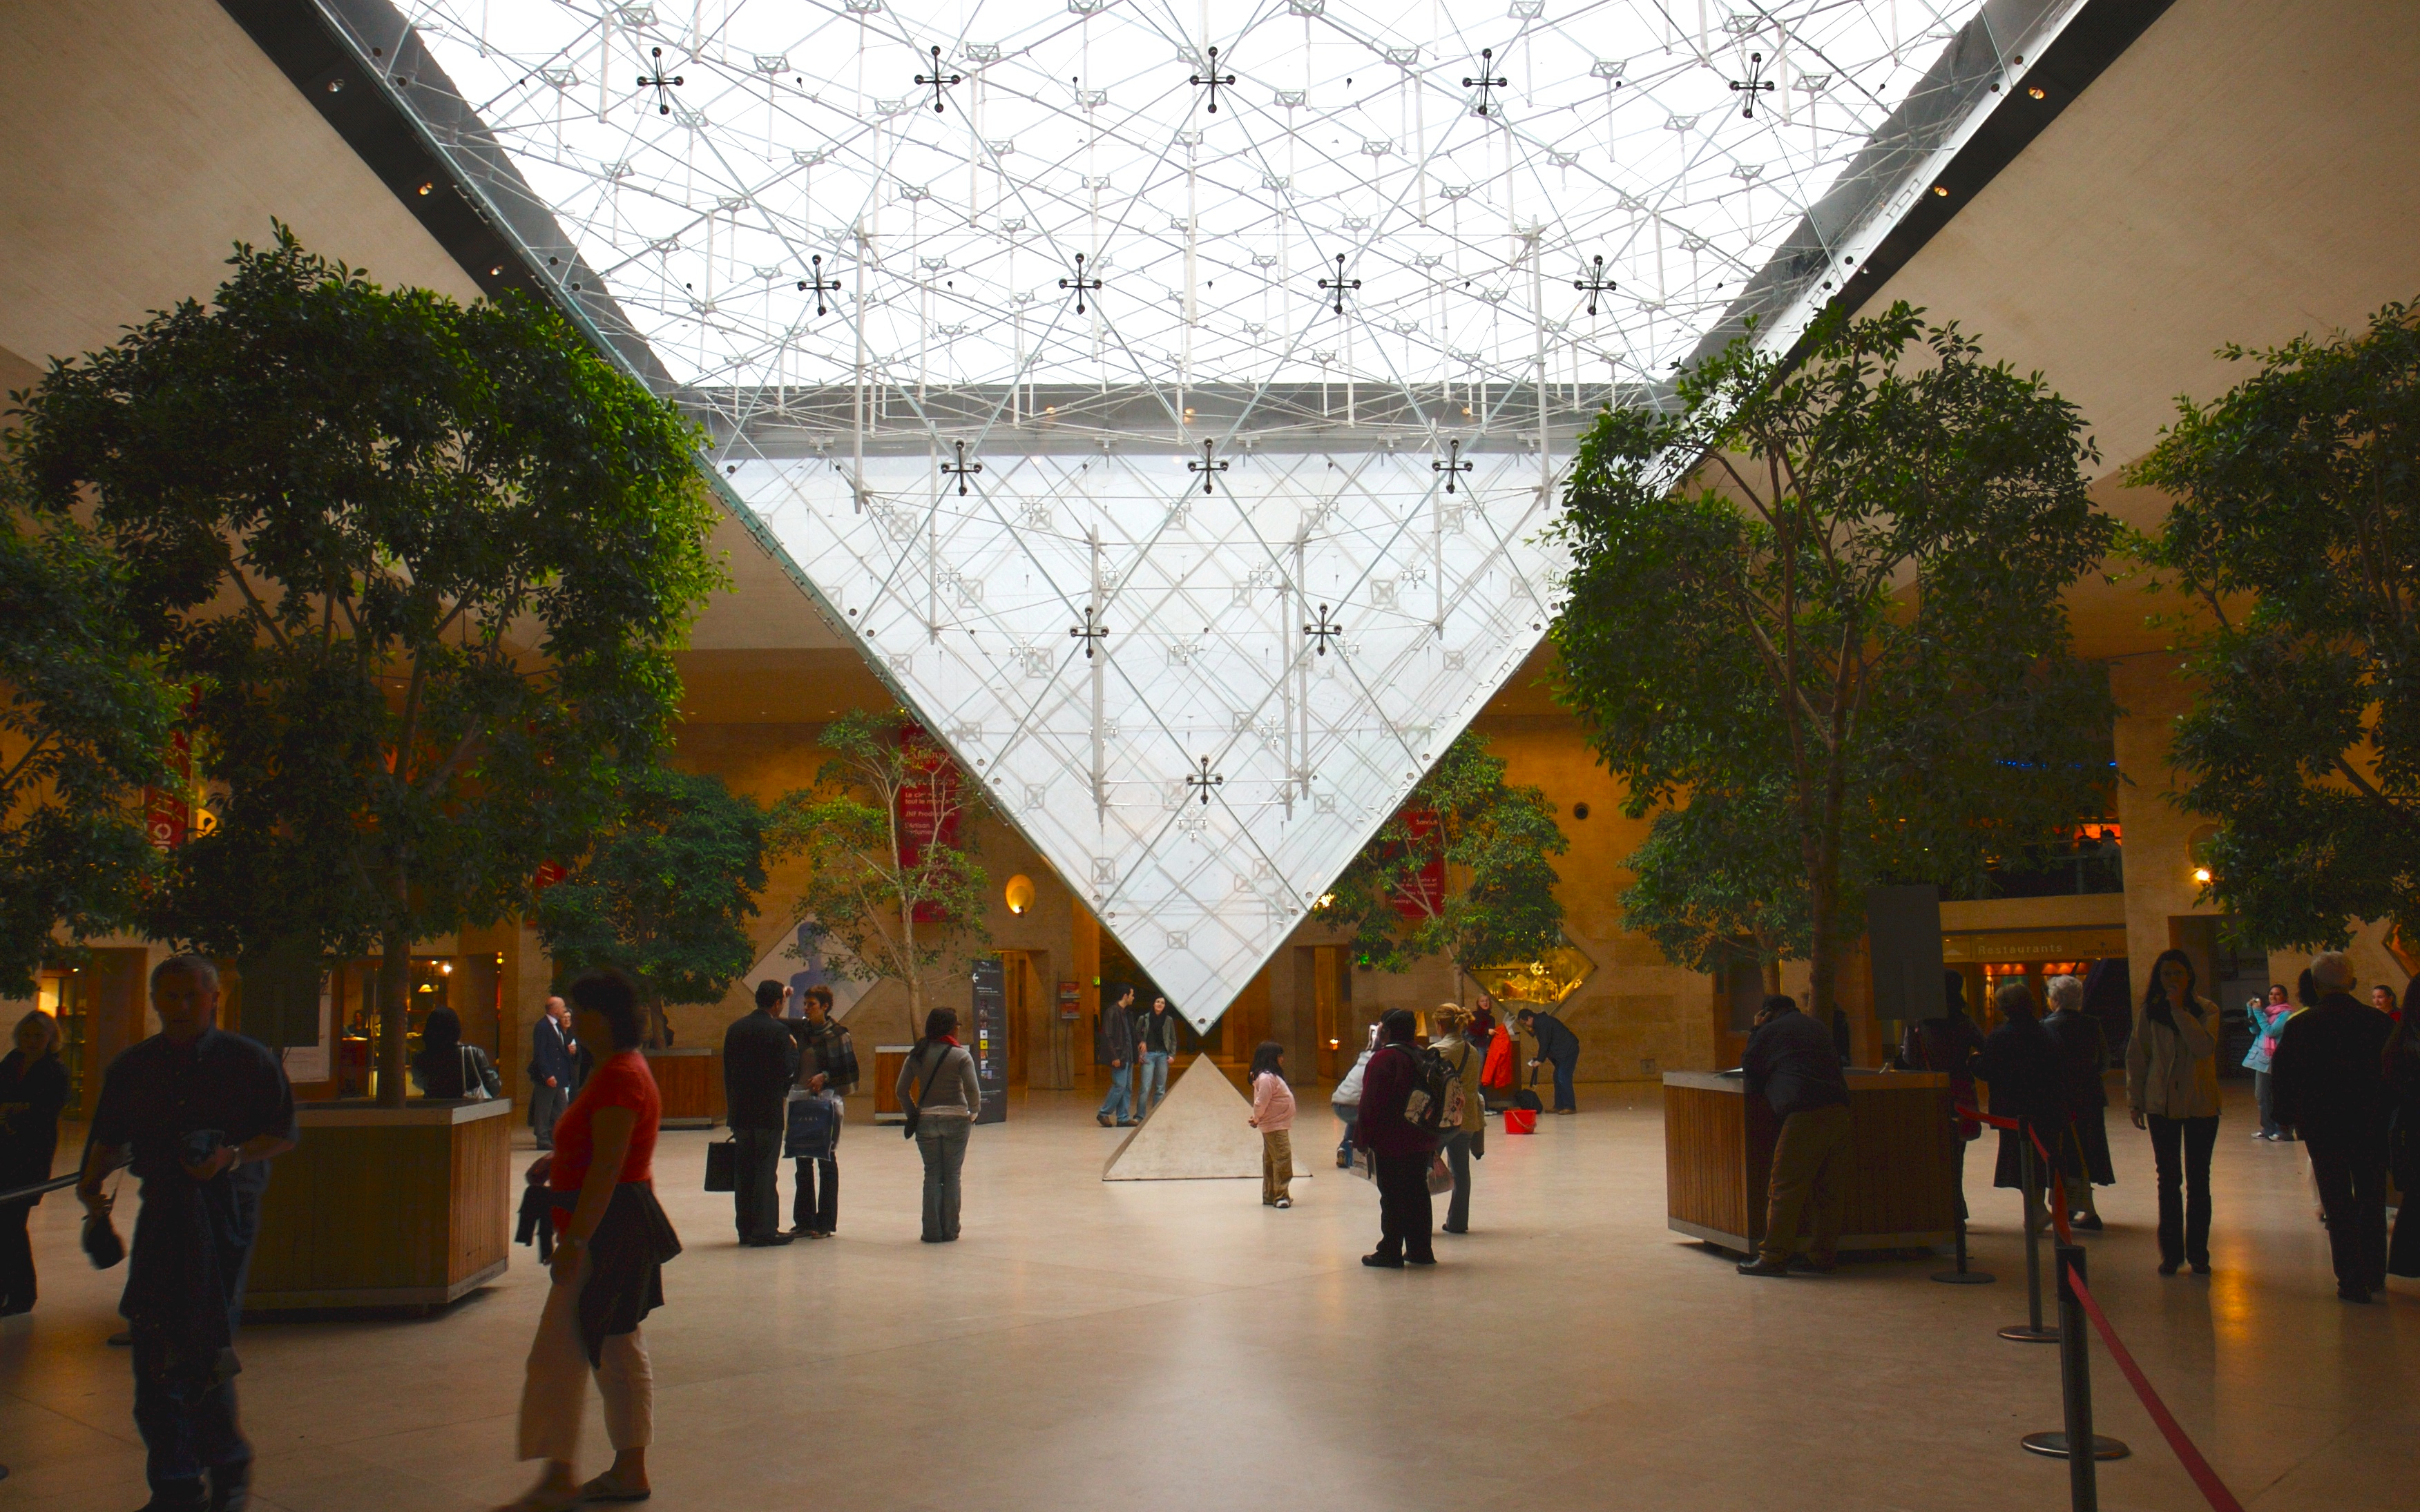 Le Louvre Billet Coupe File Guided Tour Of The Louvre Museum With Skip The Line Entry